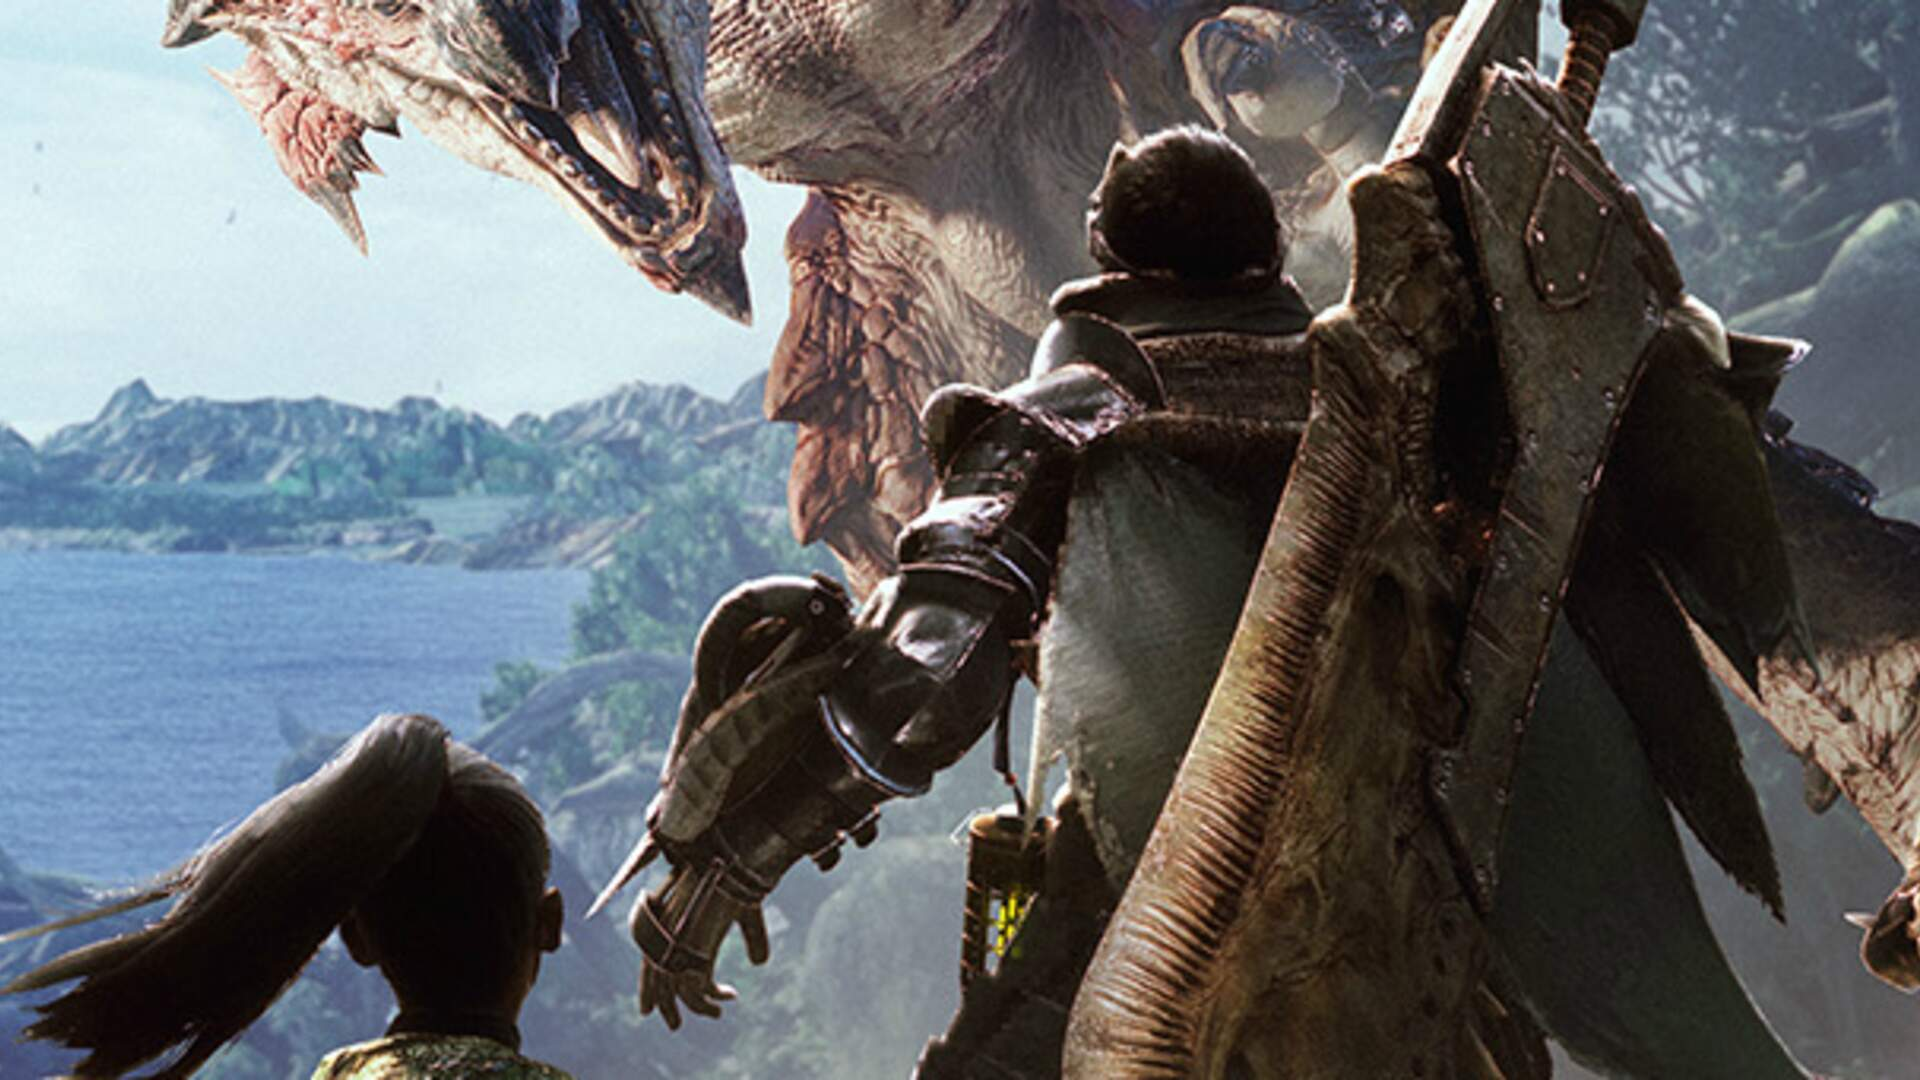 Monster Hunter: World PC Patch Fixes Crashing Issues, Will be Included in Final Version for Customers